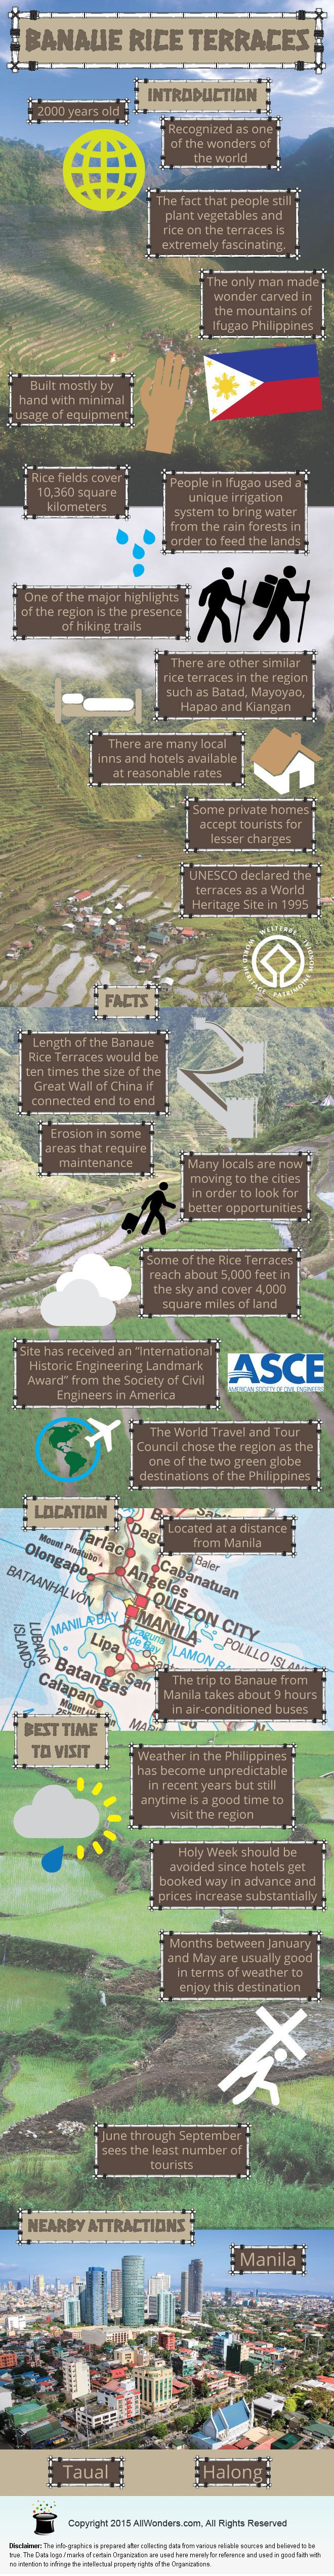 Banaue Rice Terraces Infographic showing Facts, nearby attractions and Information about the Rice Terraces in Philippines. Find out about It's location, best time to visit and more.